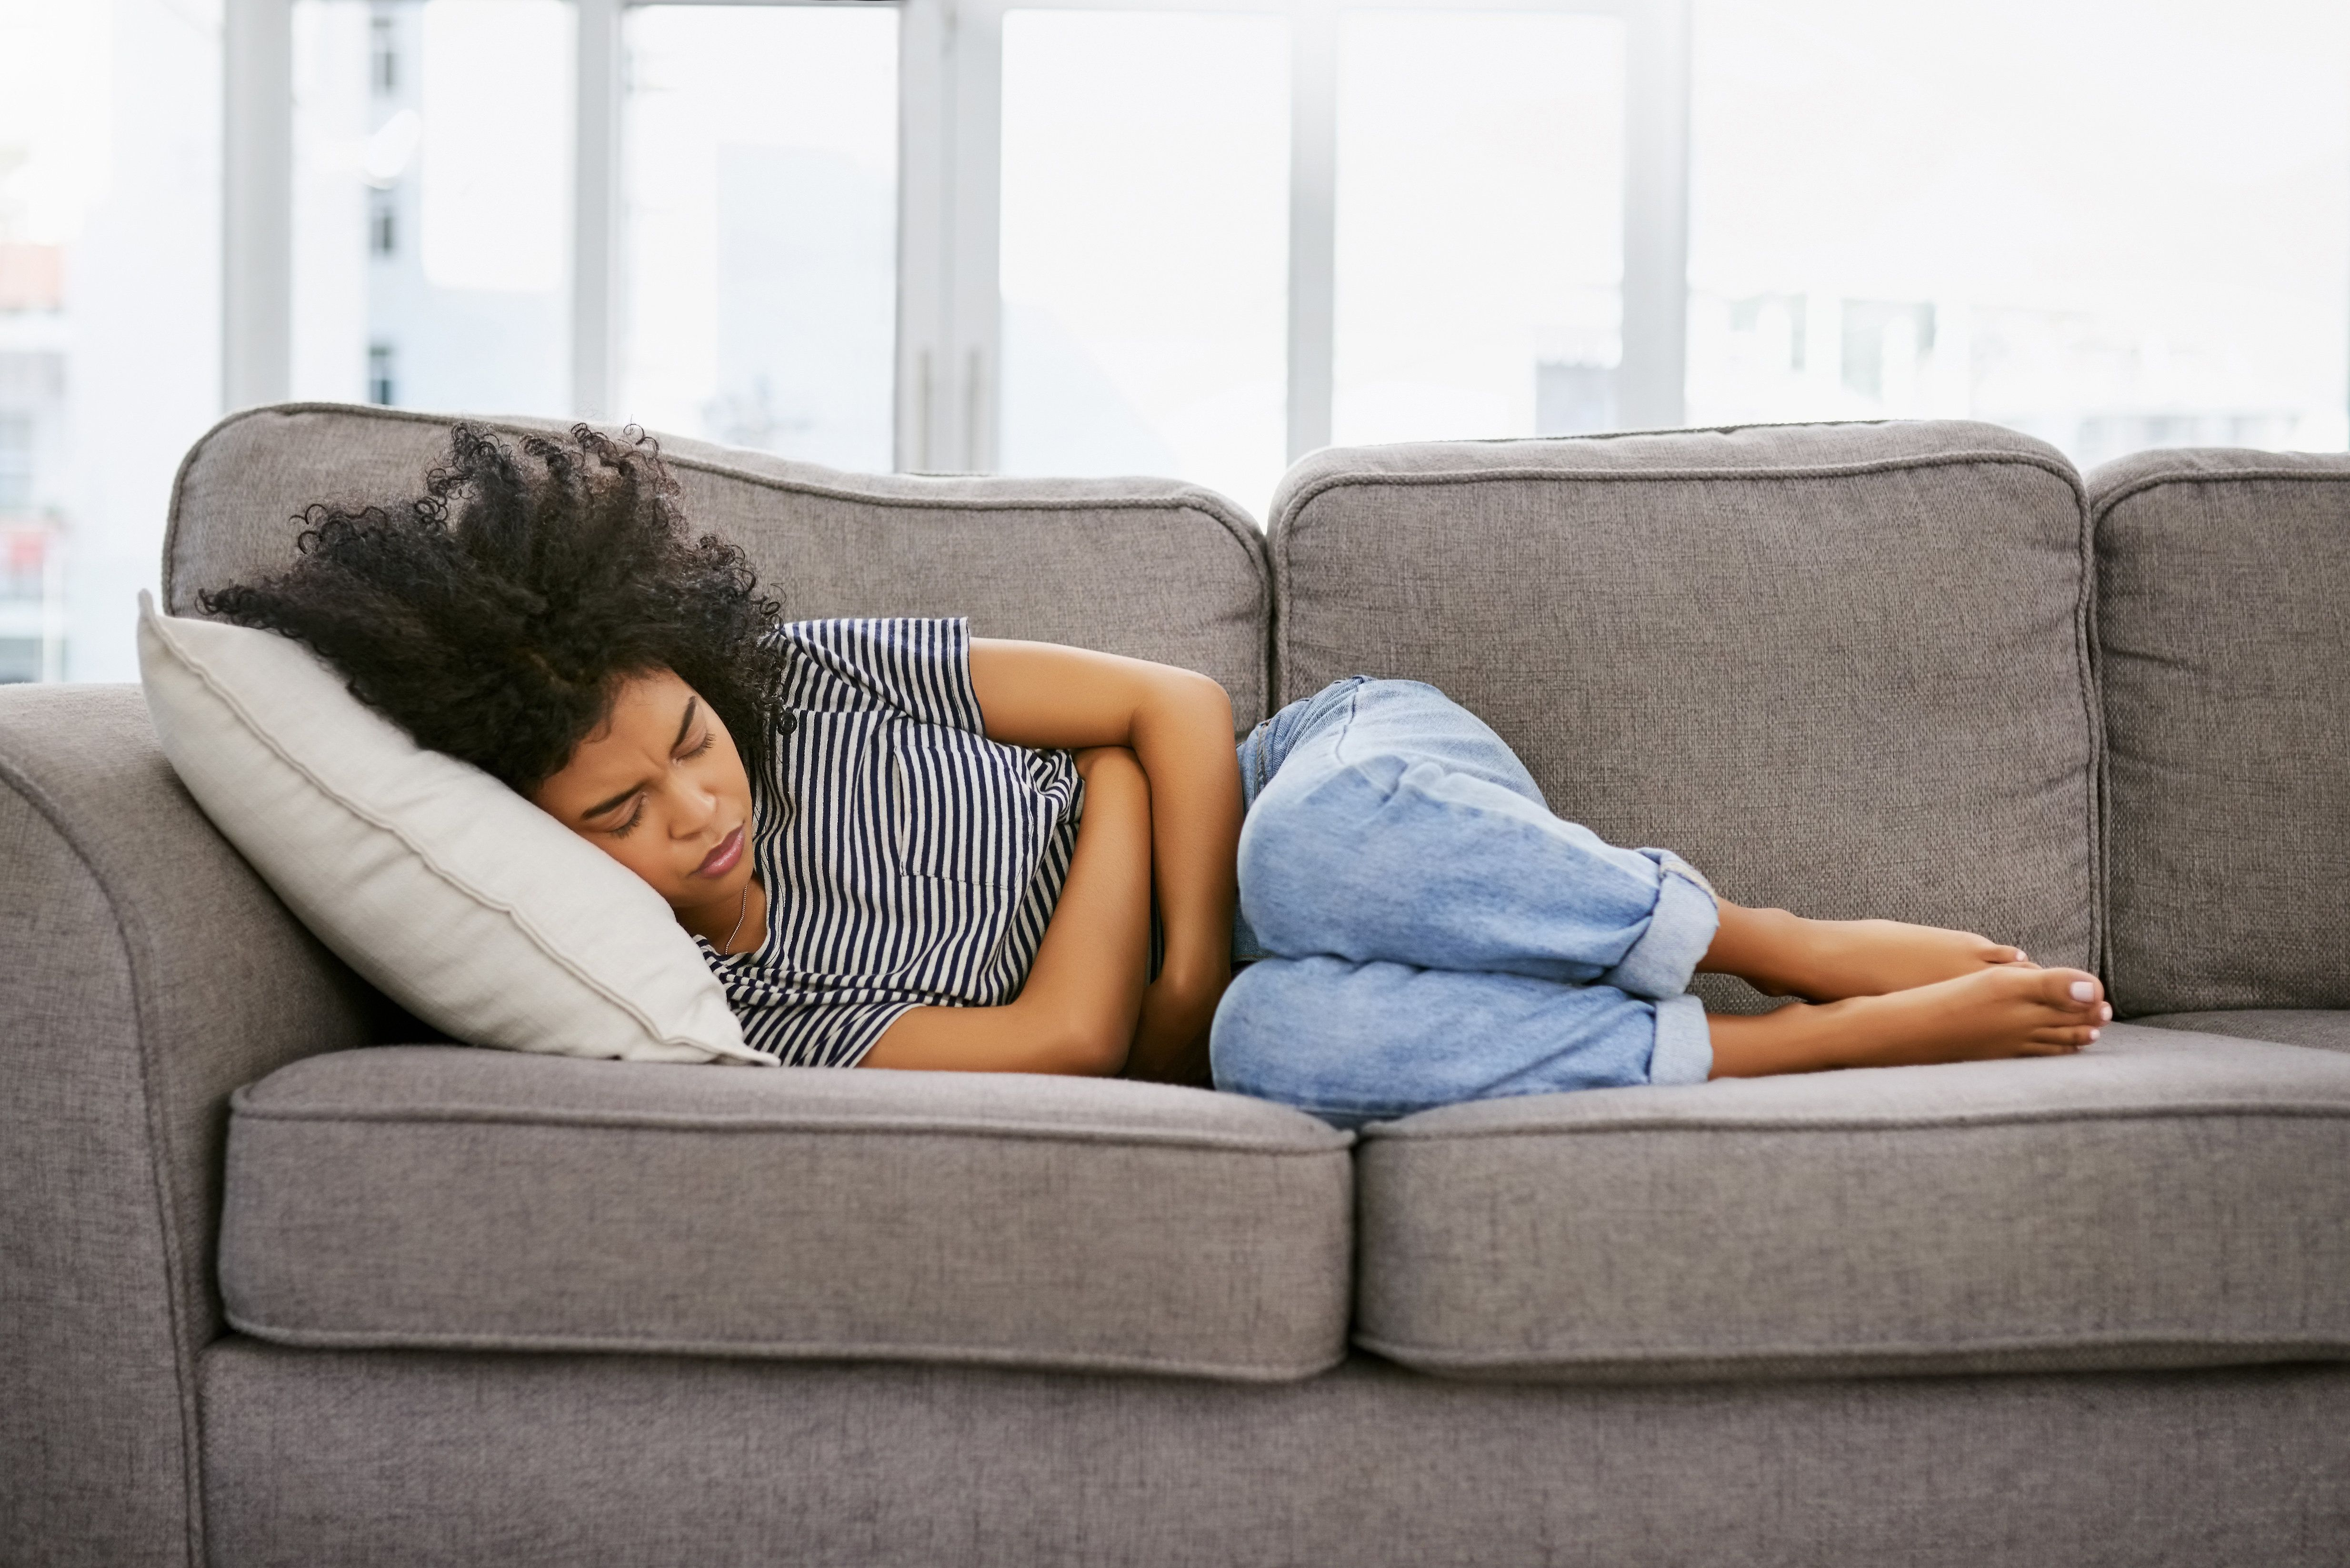 6 Stomach Pains You Should Never